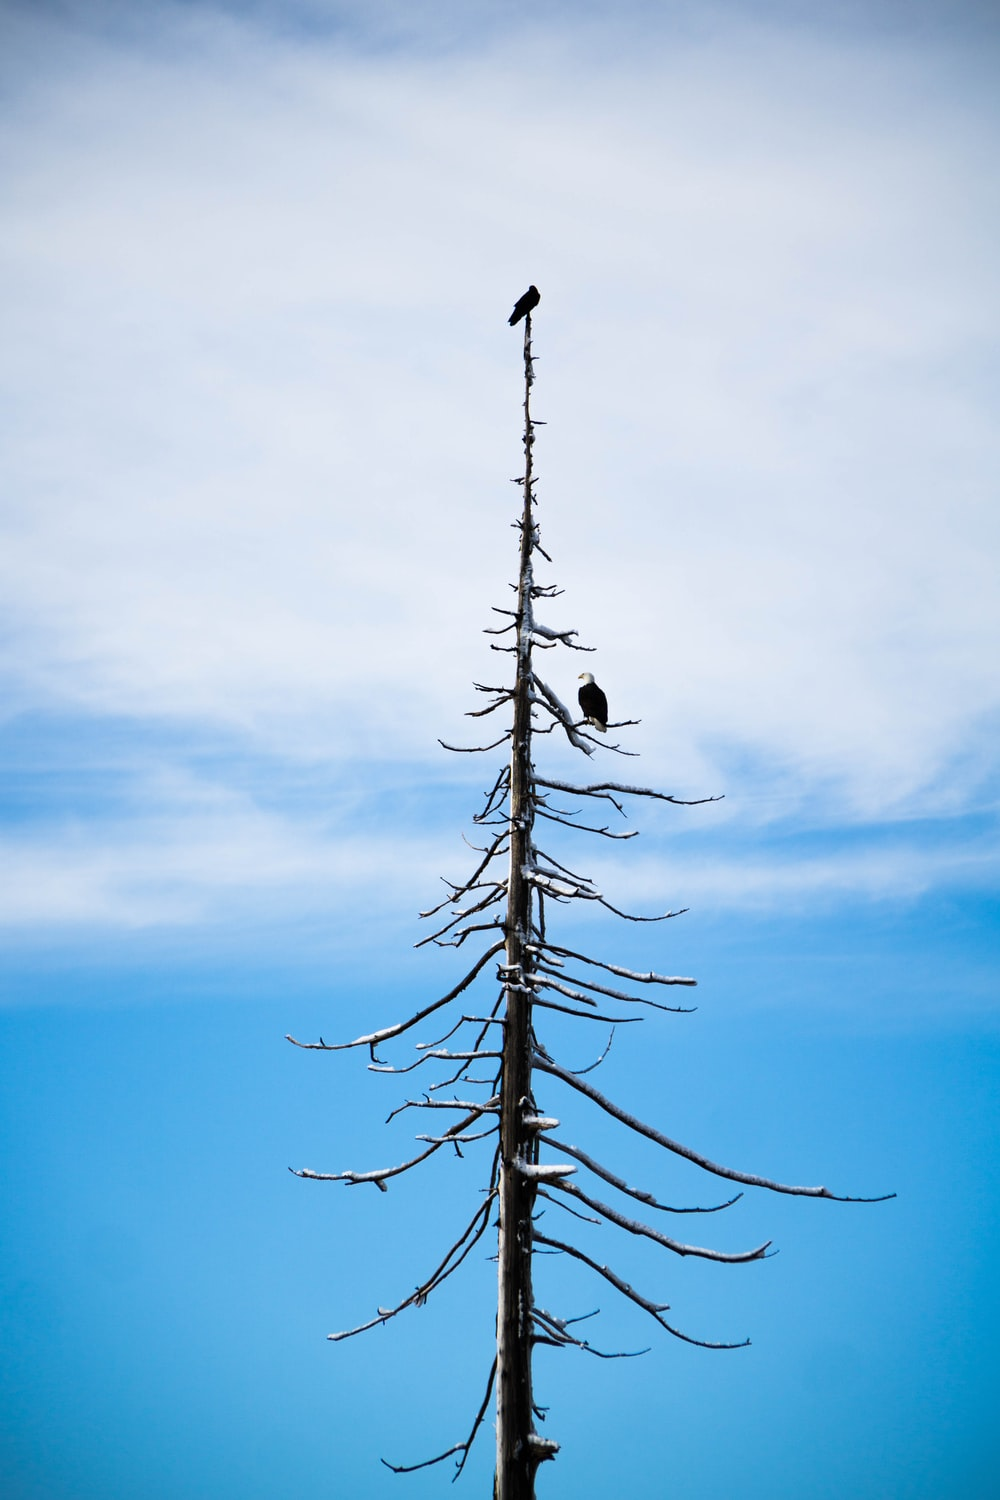 bald eagle on bare tree under white and blue sky